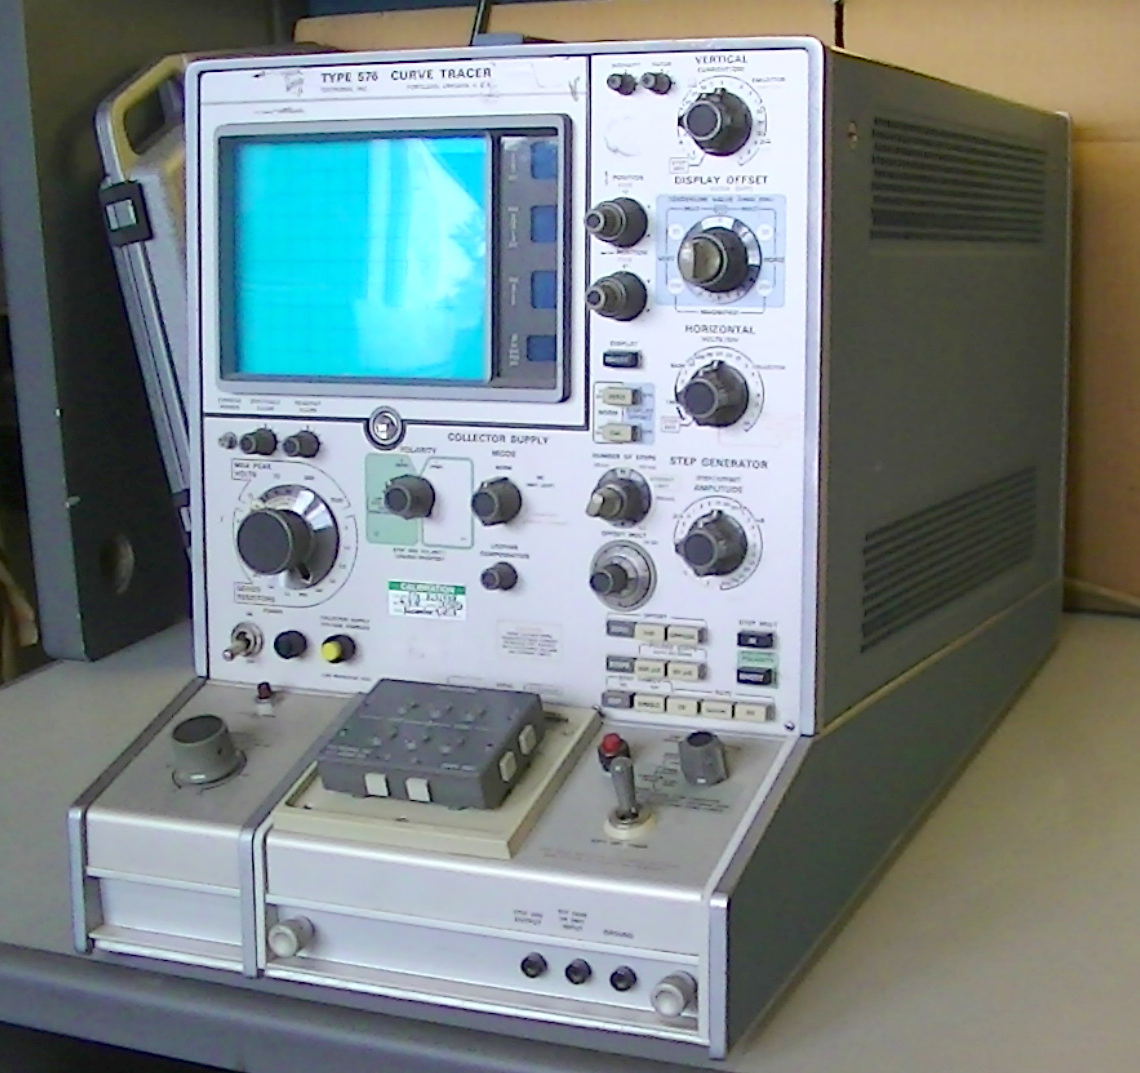 Details about Tektronix type 576 Curve Tracer with 013-0098-00 transistor  adapter